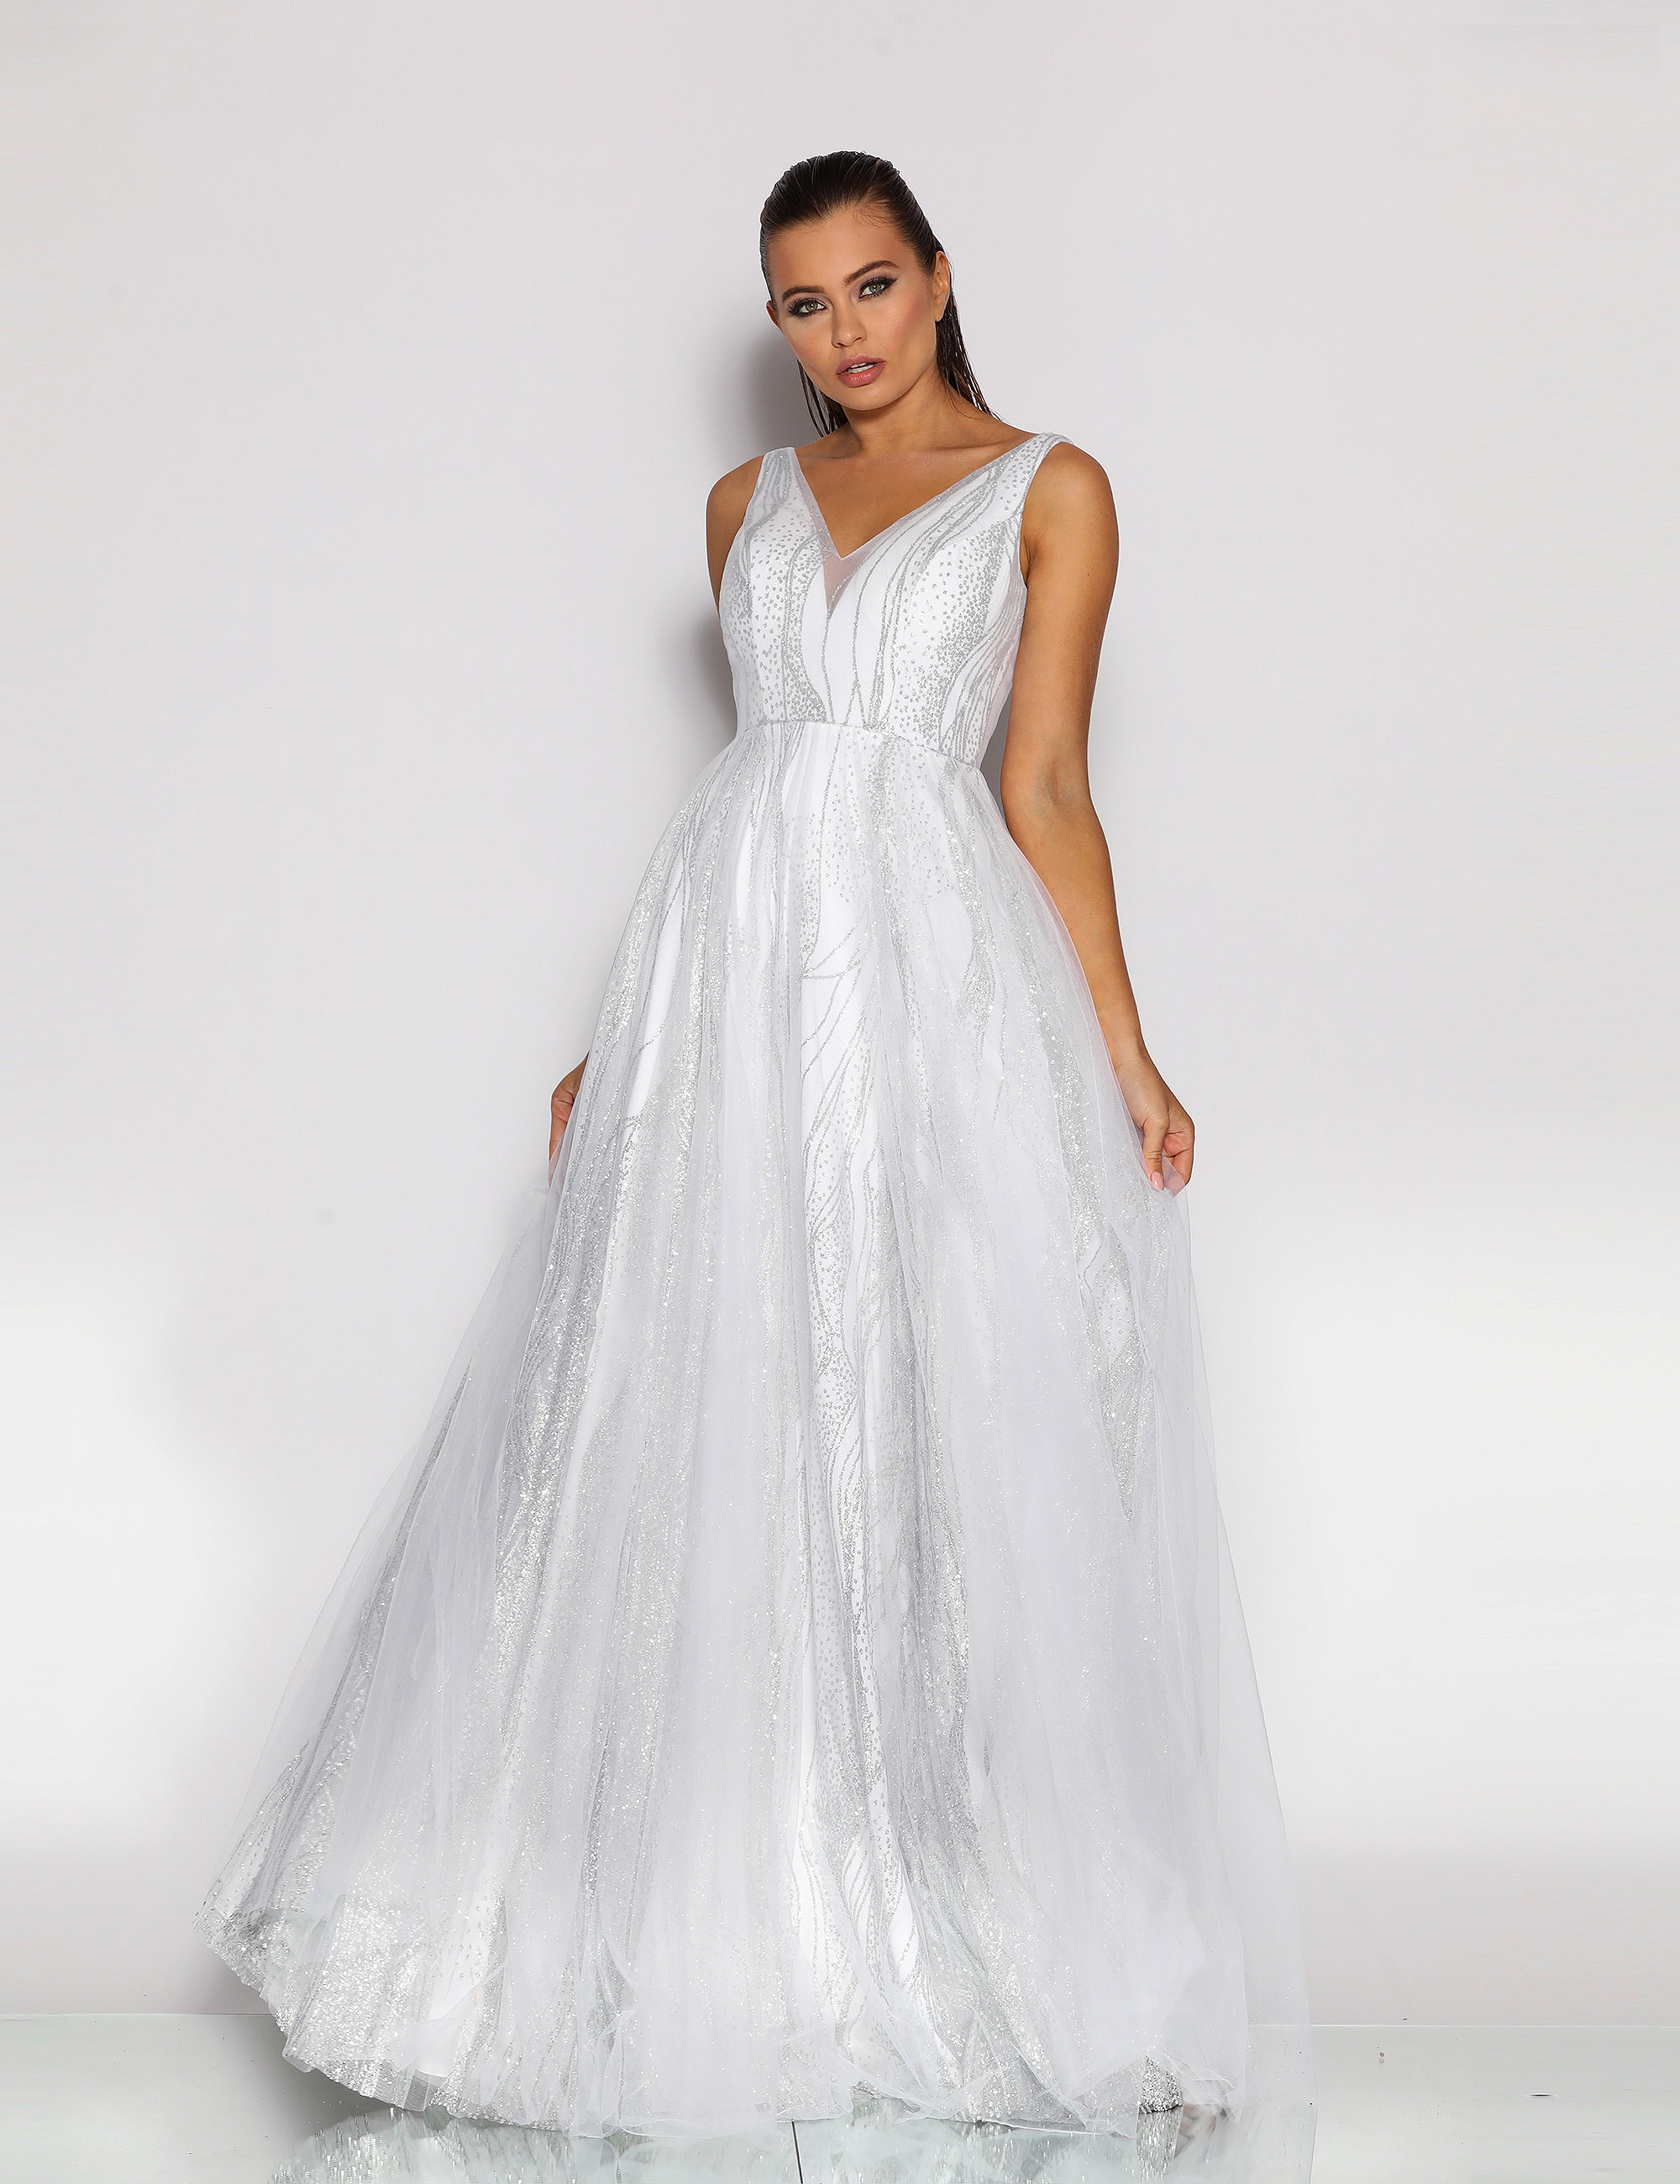 Stunning A line gown with V neckline in beautiful shimmer fabric